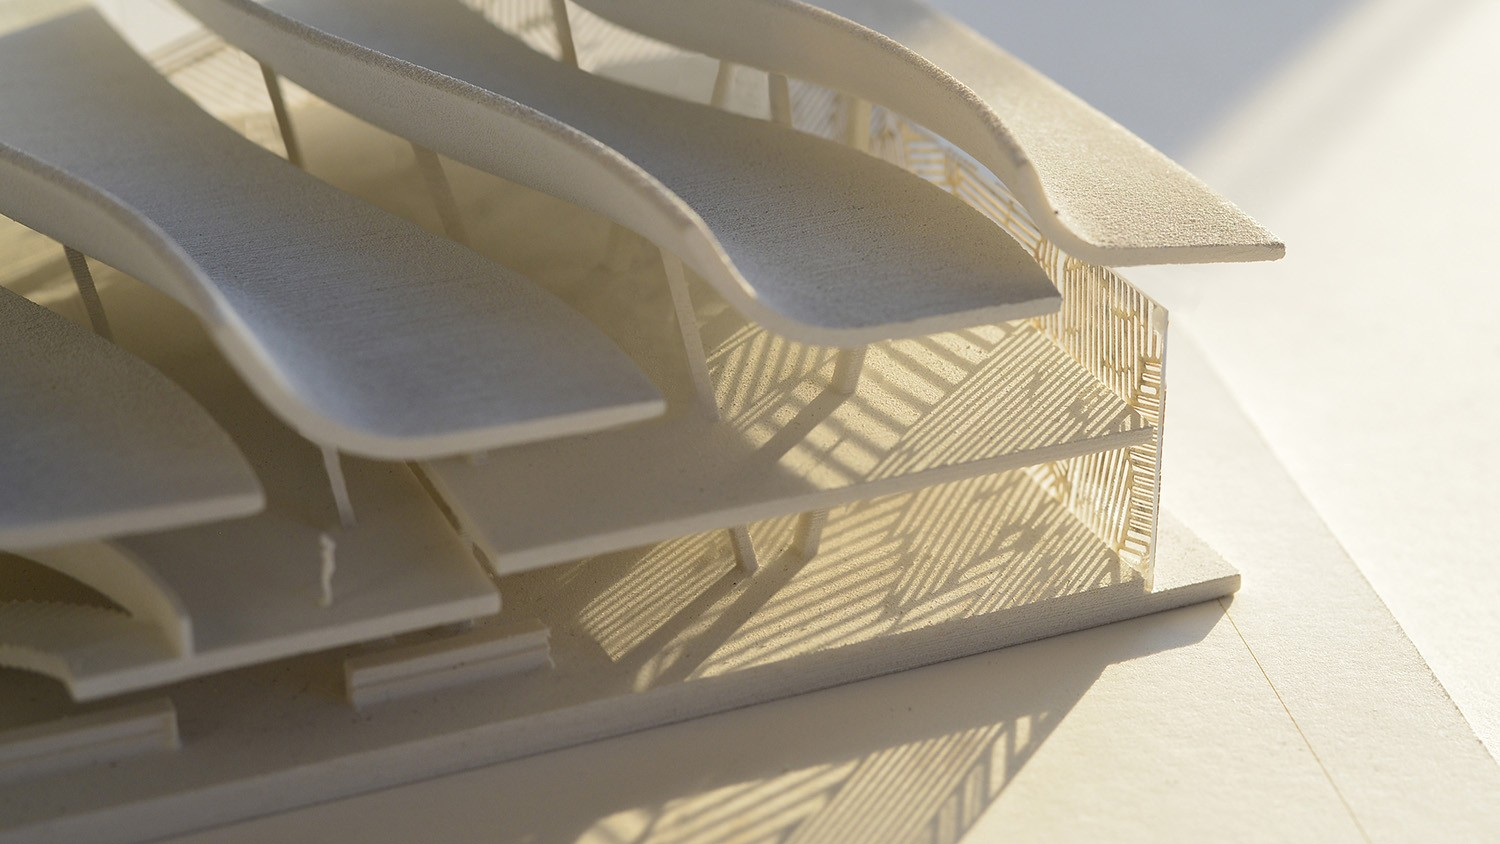 https://s3.us-east-2.amazonaws.com/steven-holl/uploads/projects/project-images/StevenHollArchitects_Malawi_Model_Facade_Detail_WH.jpg